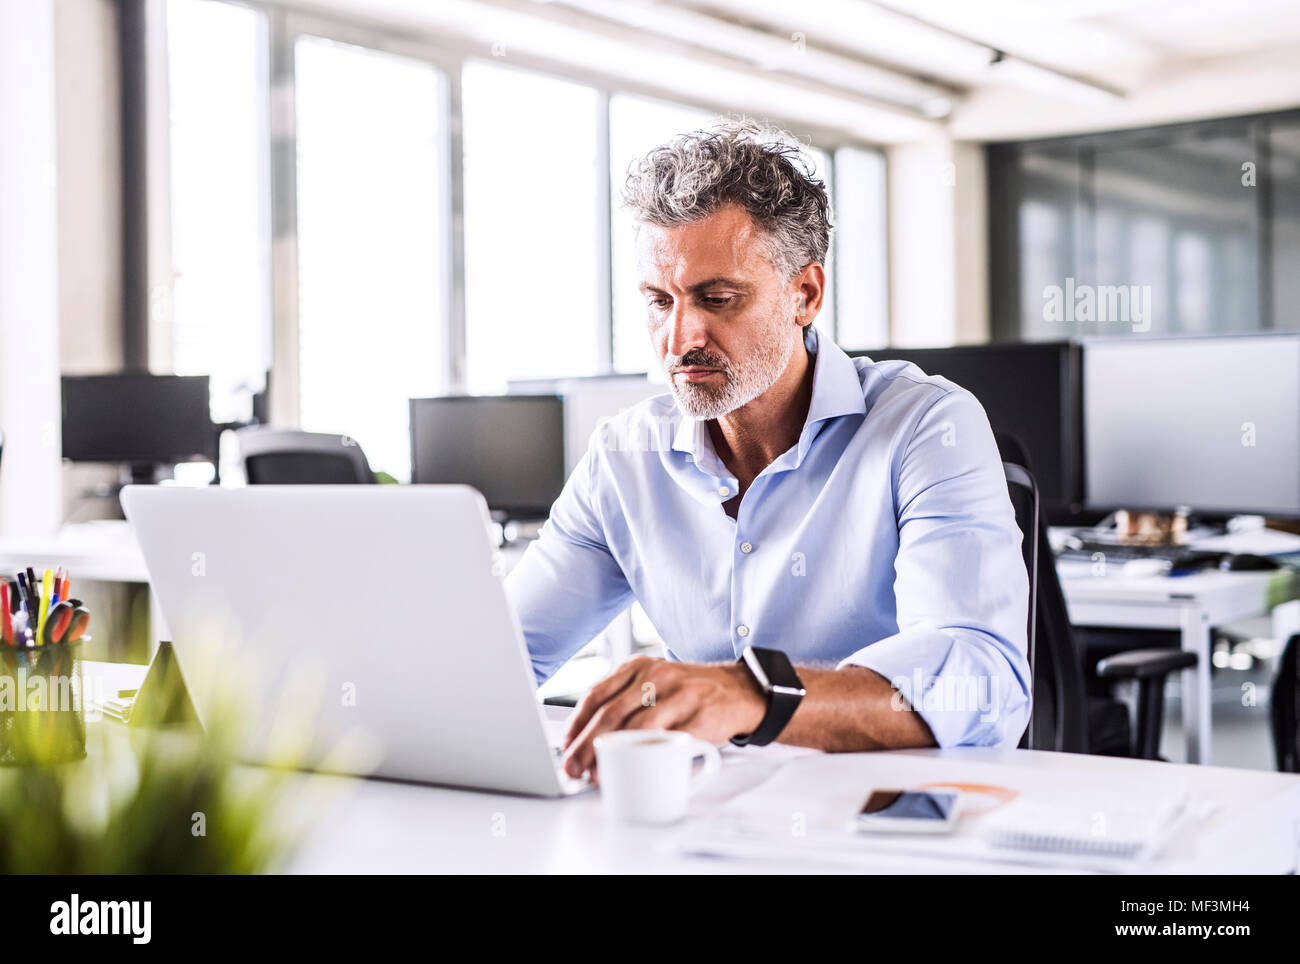 Mature businessman sitting at desk in office using laptop Photo Stock